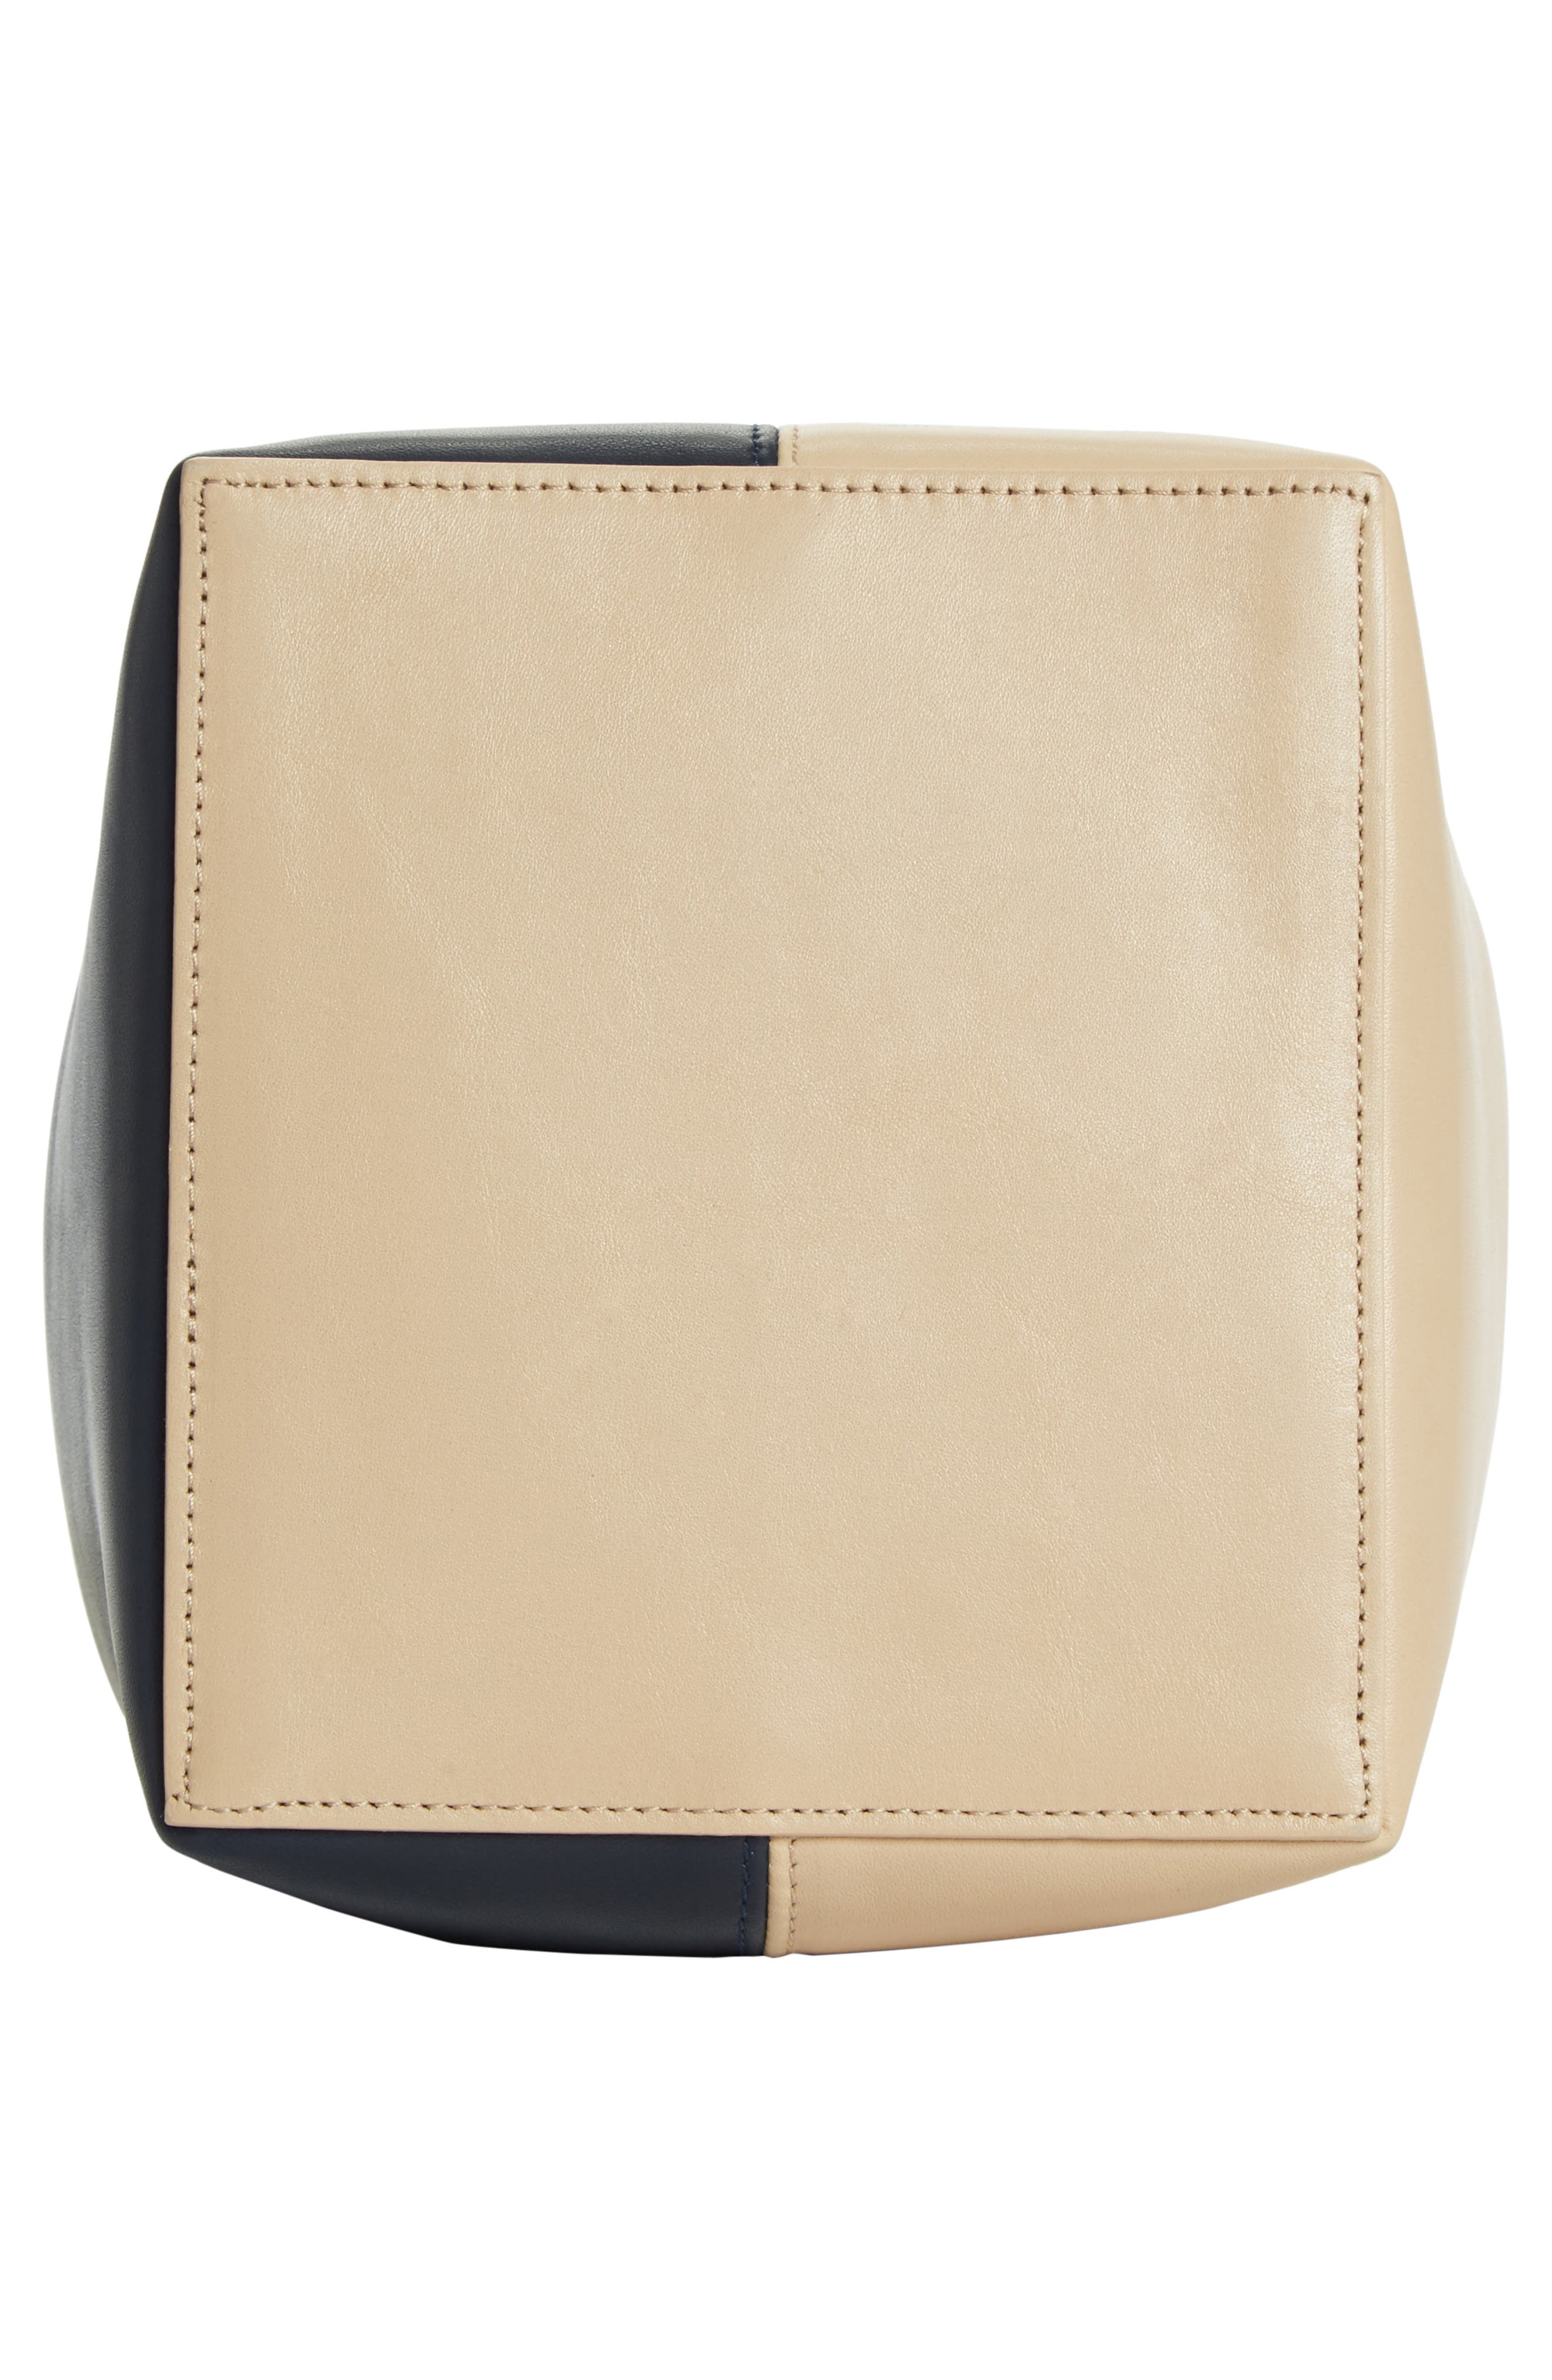 Small Apple Tricolor Leather Bag,                             Alternate thumbnail 6, color,                             250